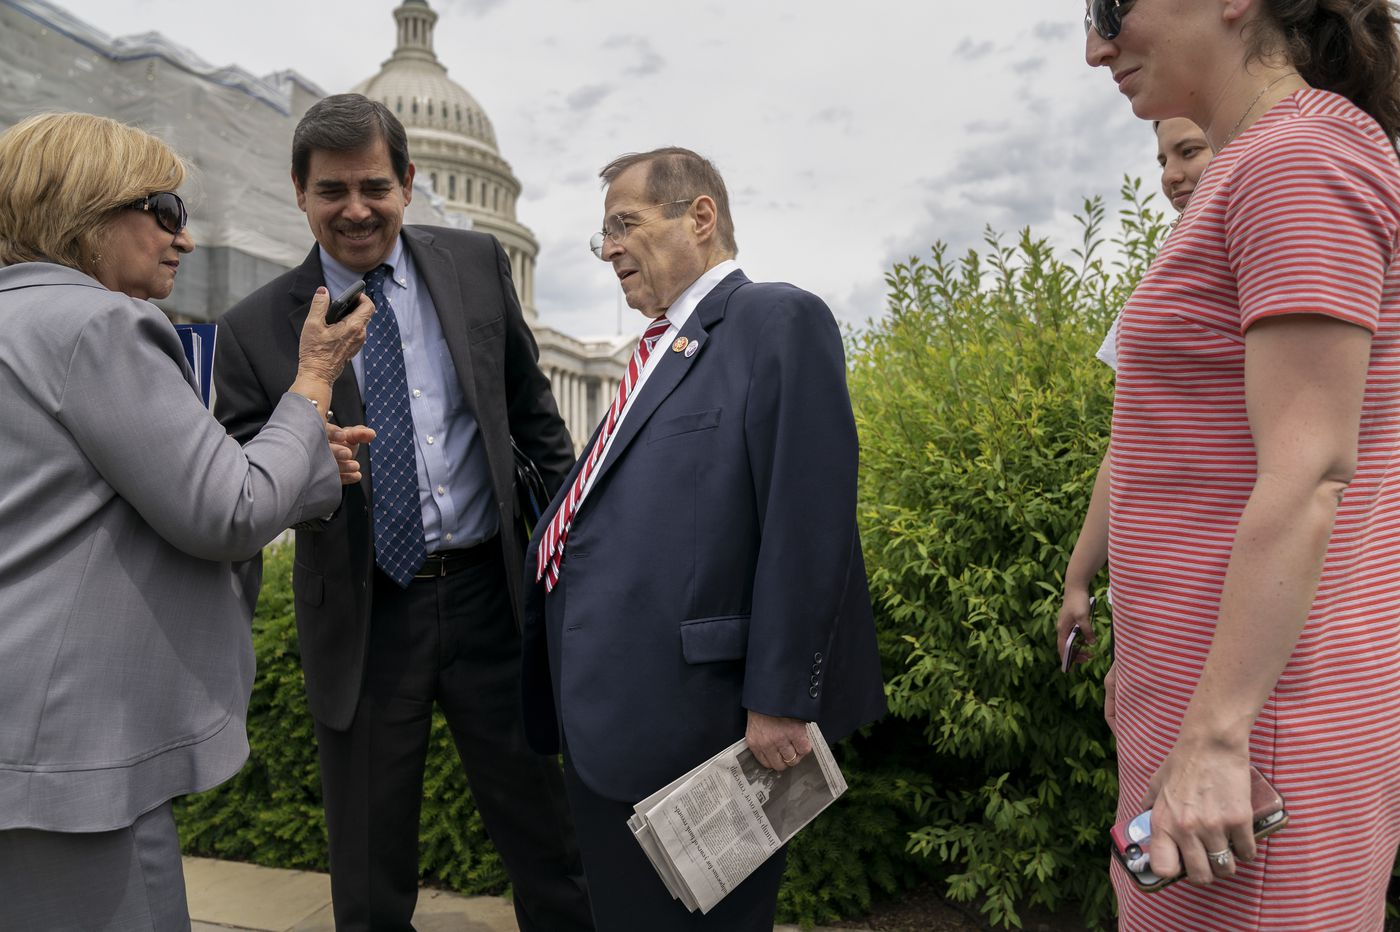 Jerry Nadler Appears to Nearly Pass out at Press Conference